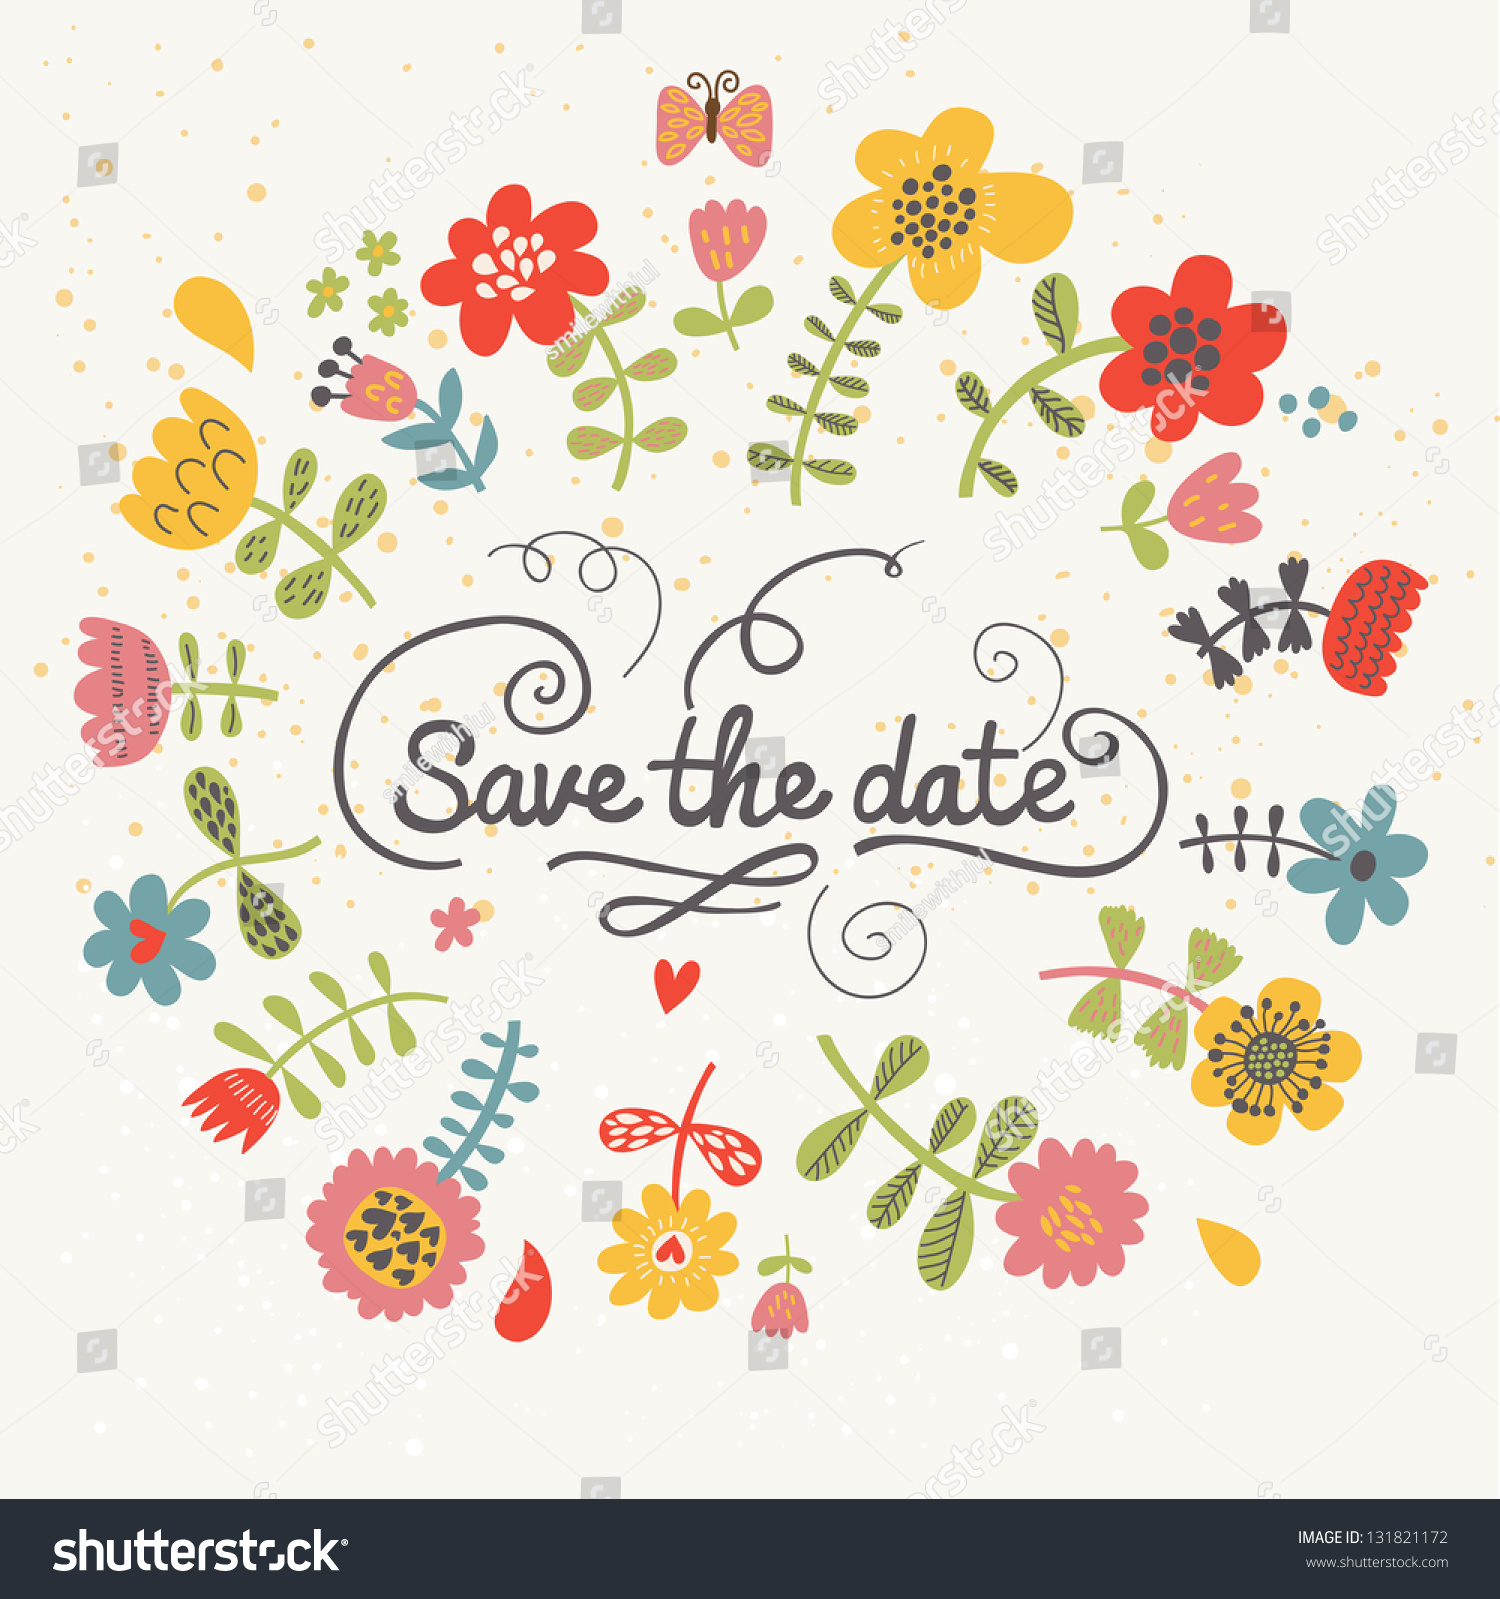 Save The Date Wedding Floral Ornament Wedding Floral: Save Date Cute Floral Bright Wedding Stock Vector